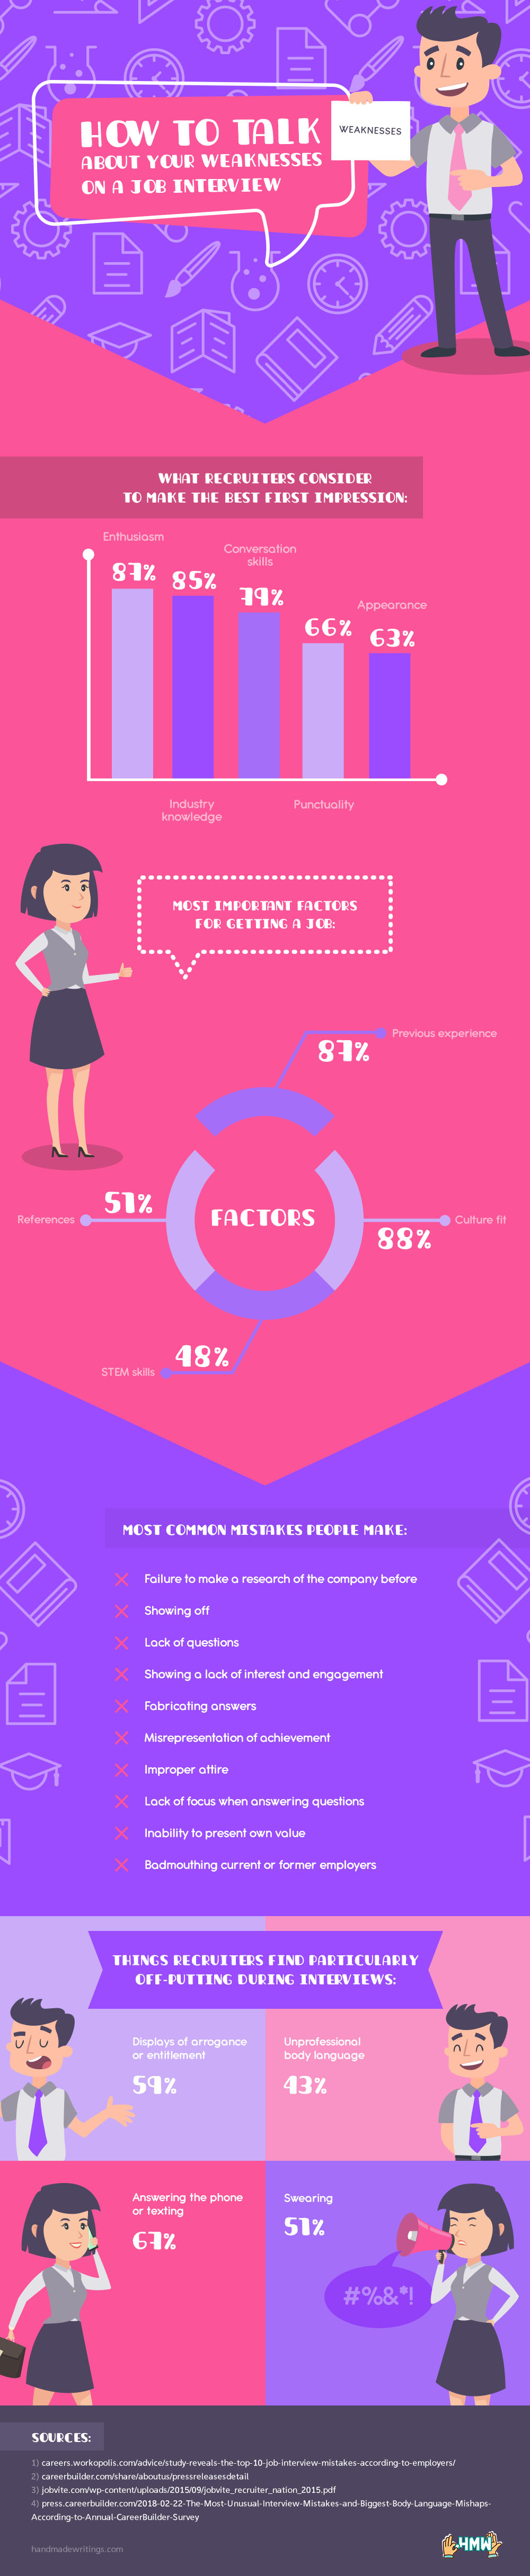 how to talk about your weaknesses on a job interview infographic